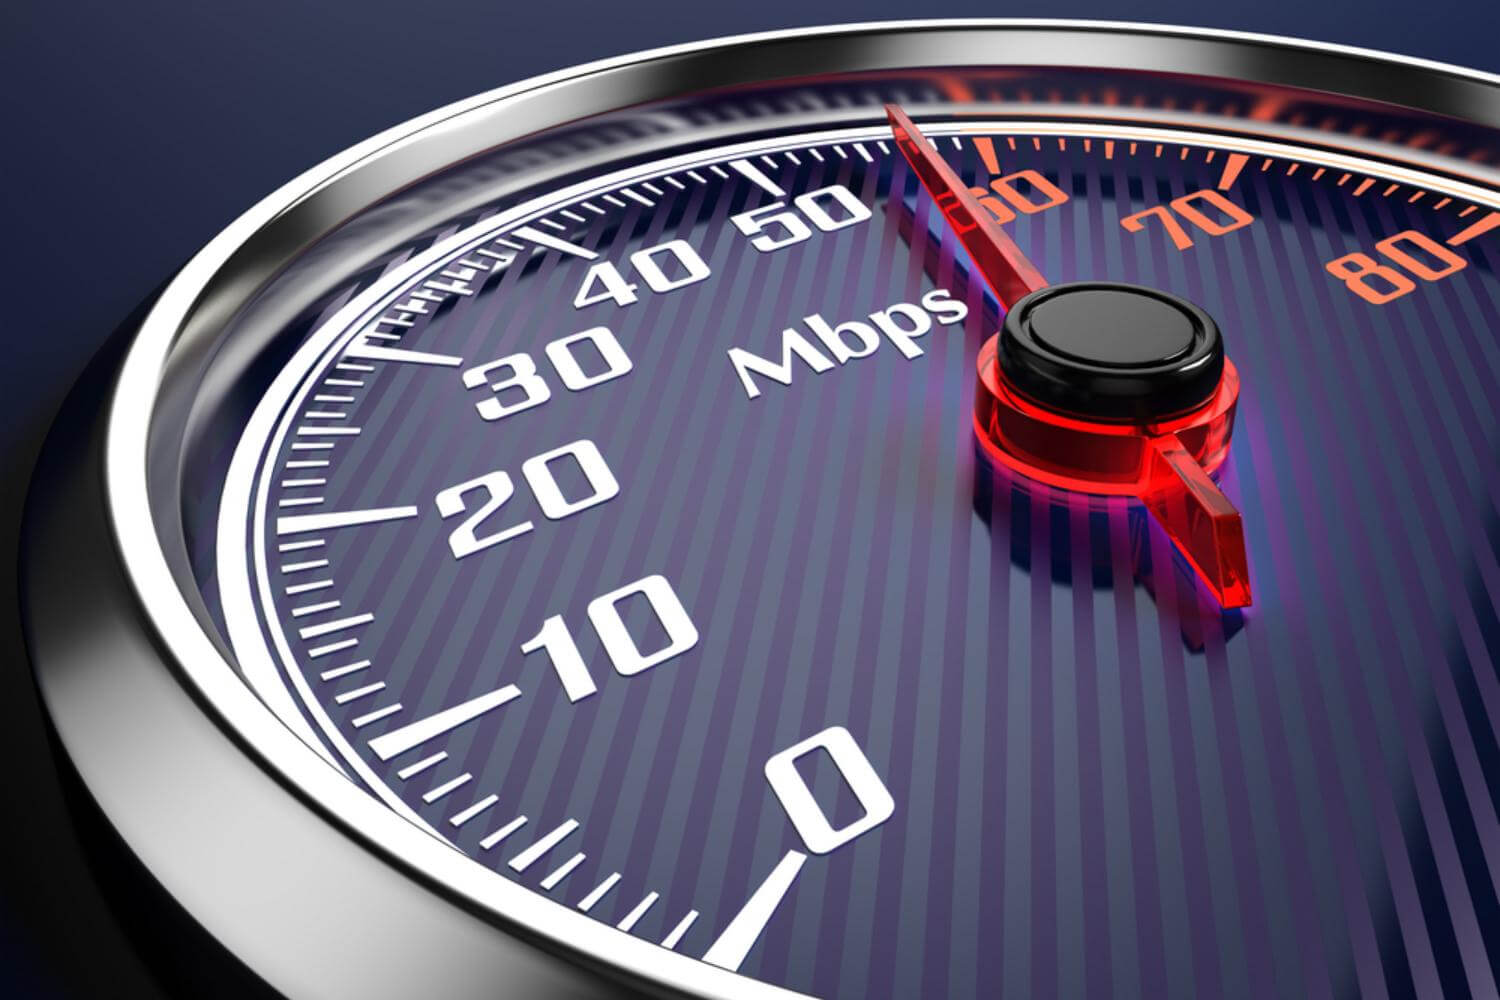 ASA rules to ban 'up to' broadband speed claims